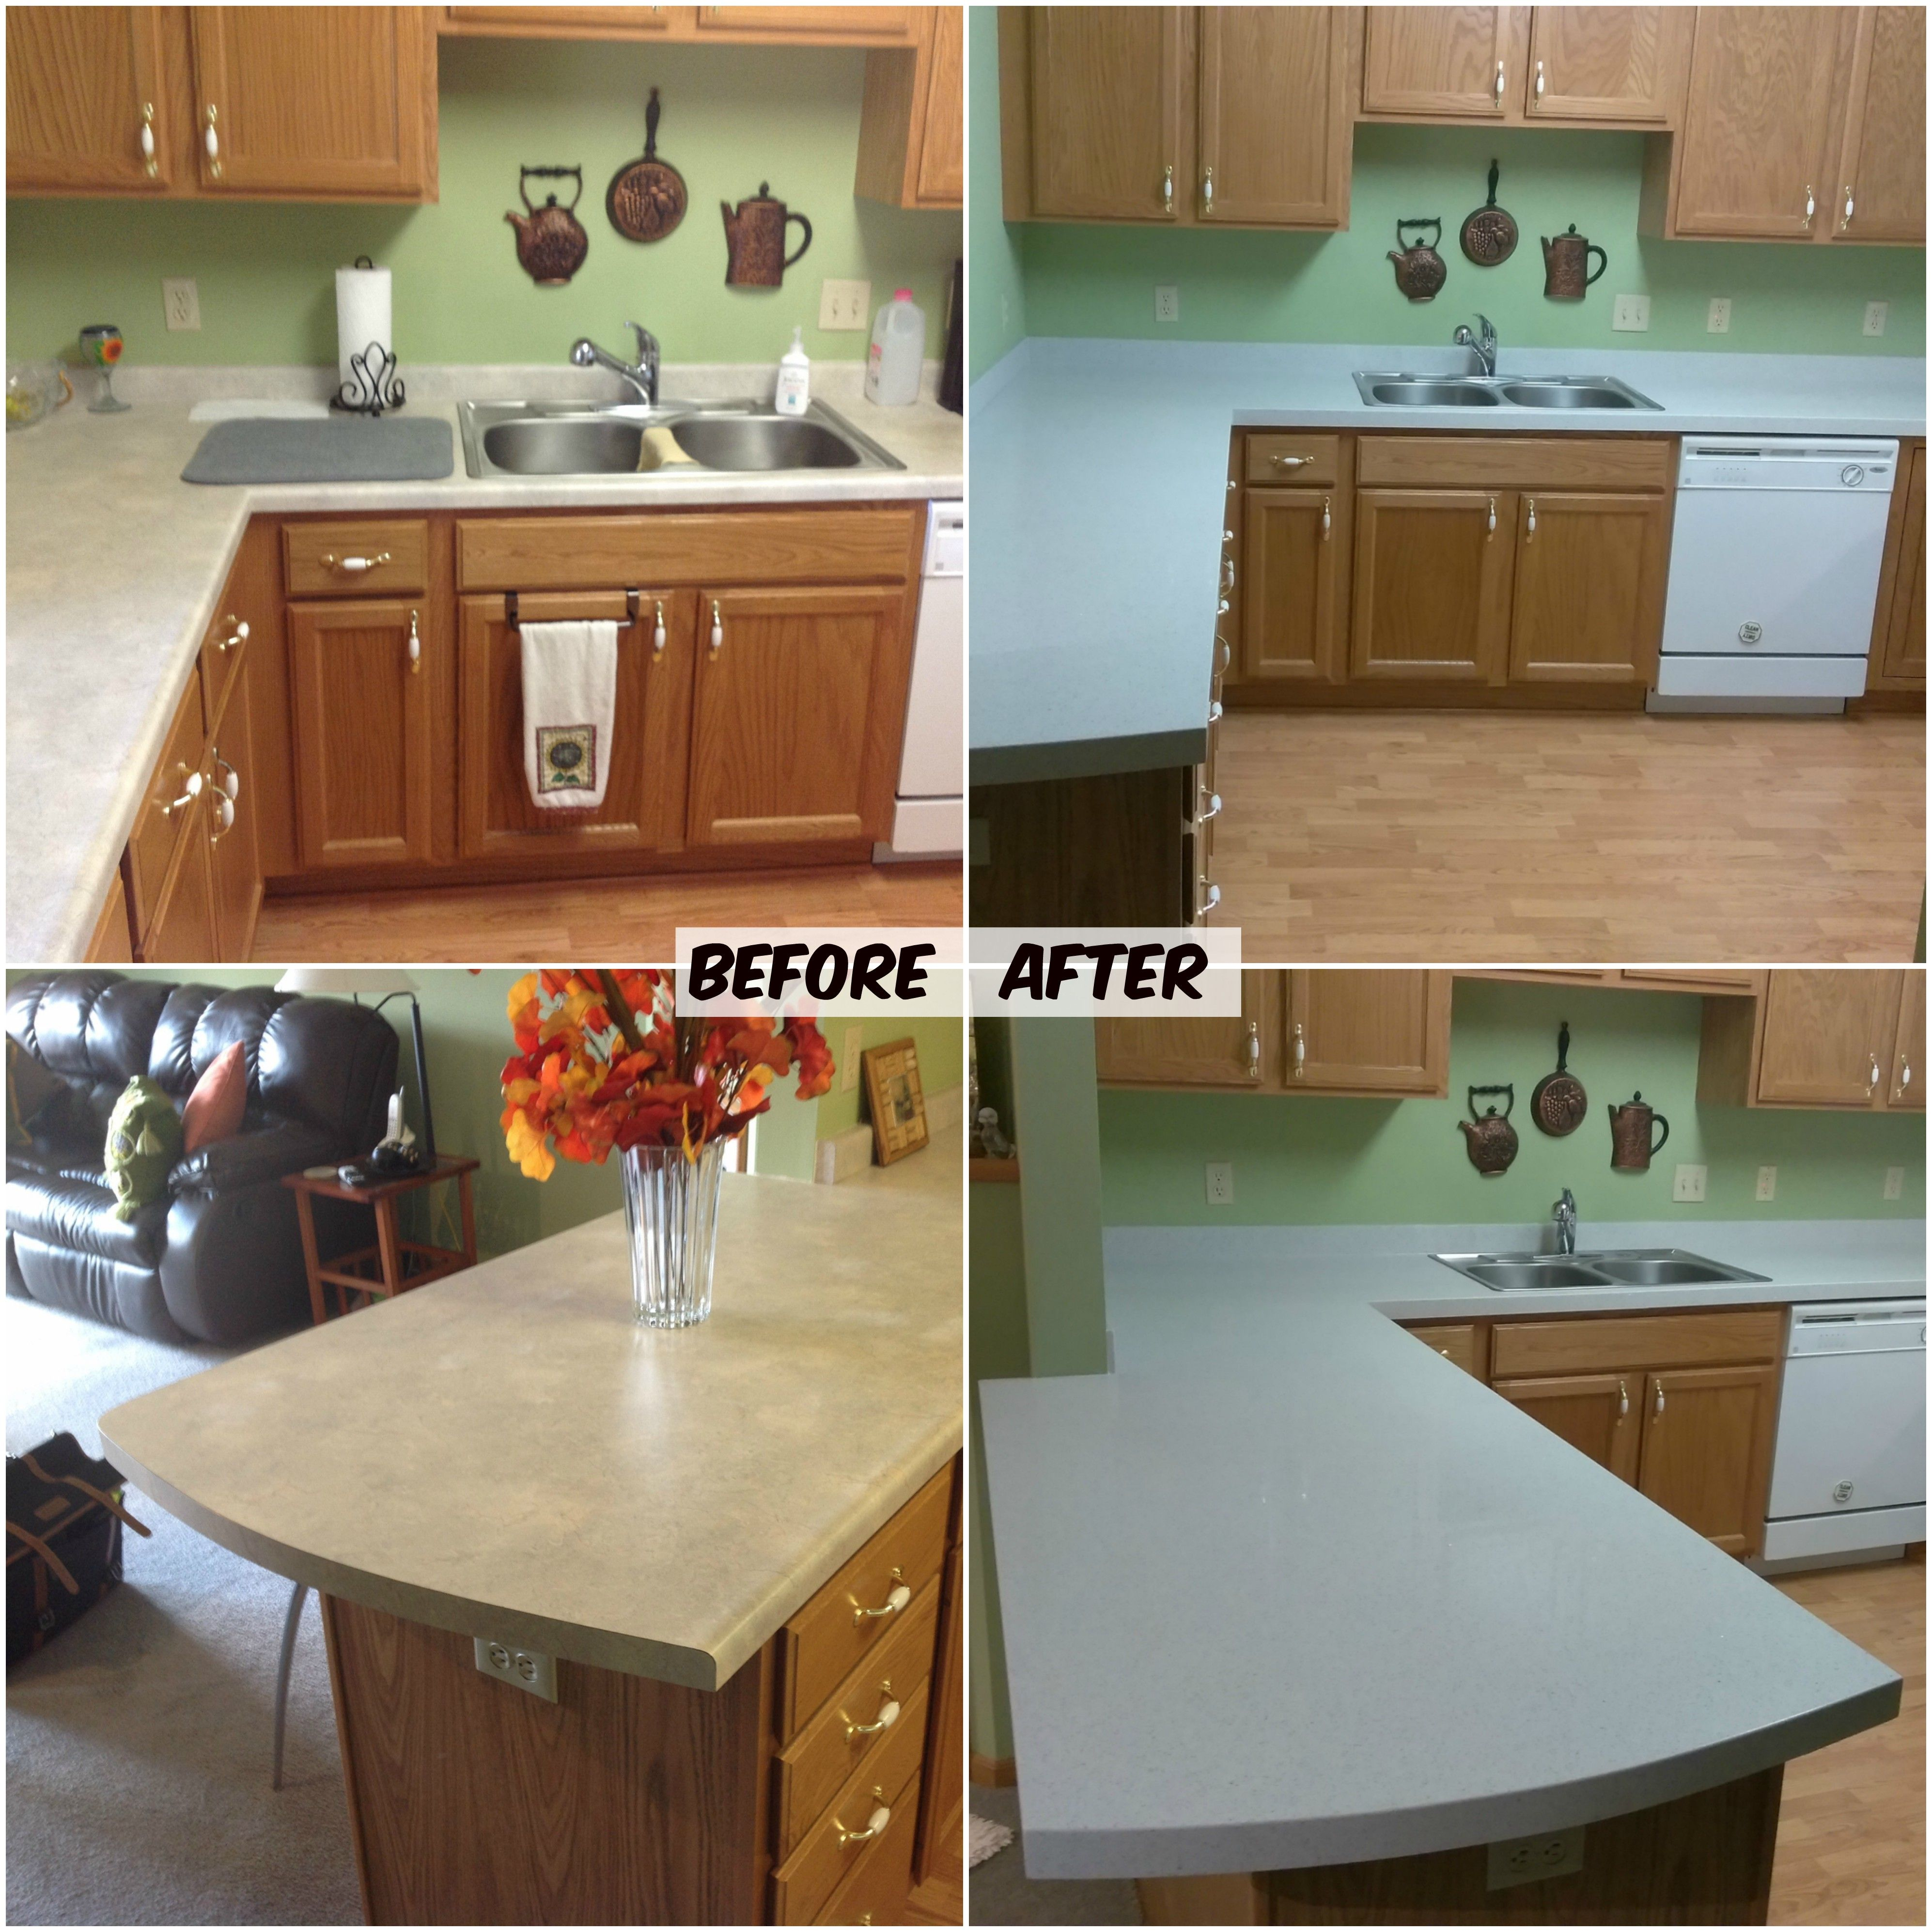 Tired Of Your Old Kitchen Update With Quartz Counter Tops From